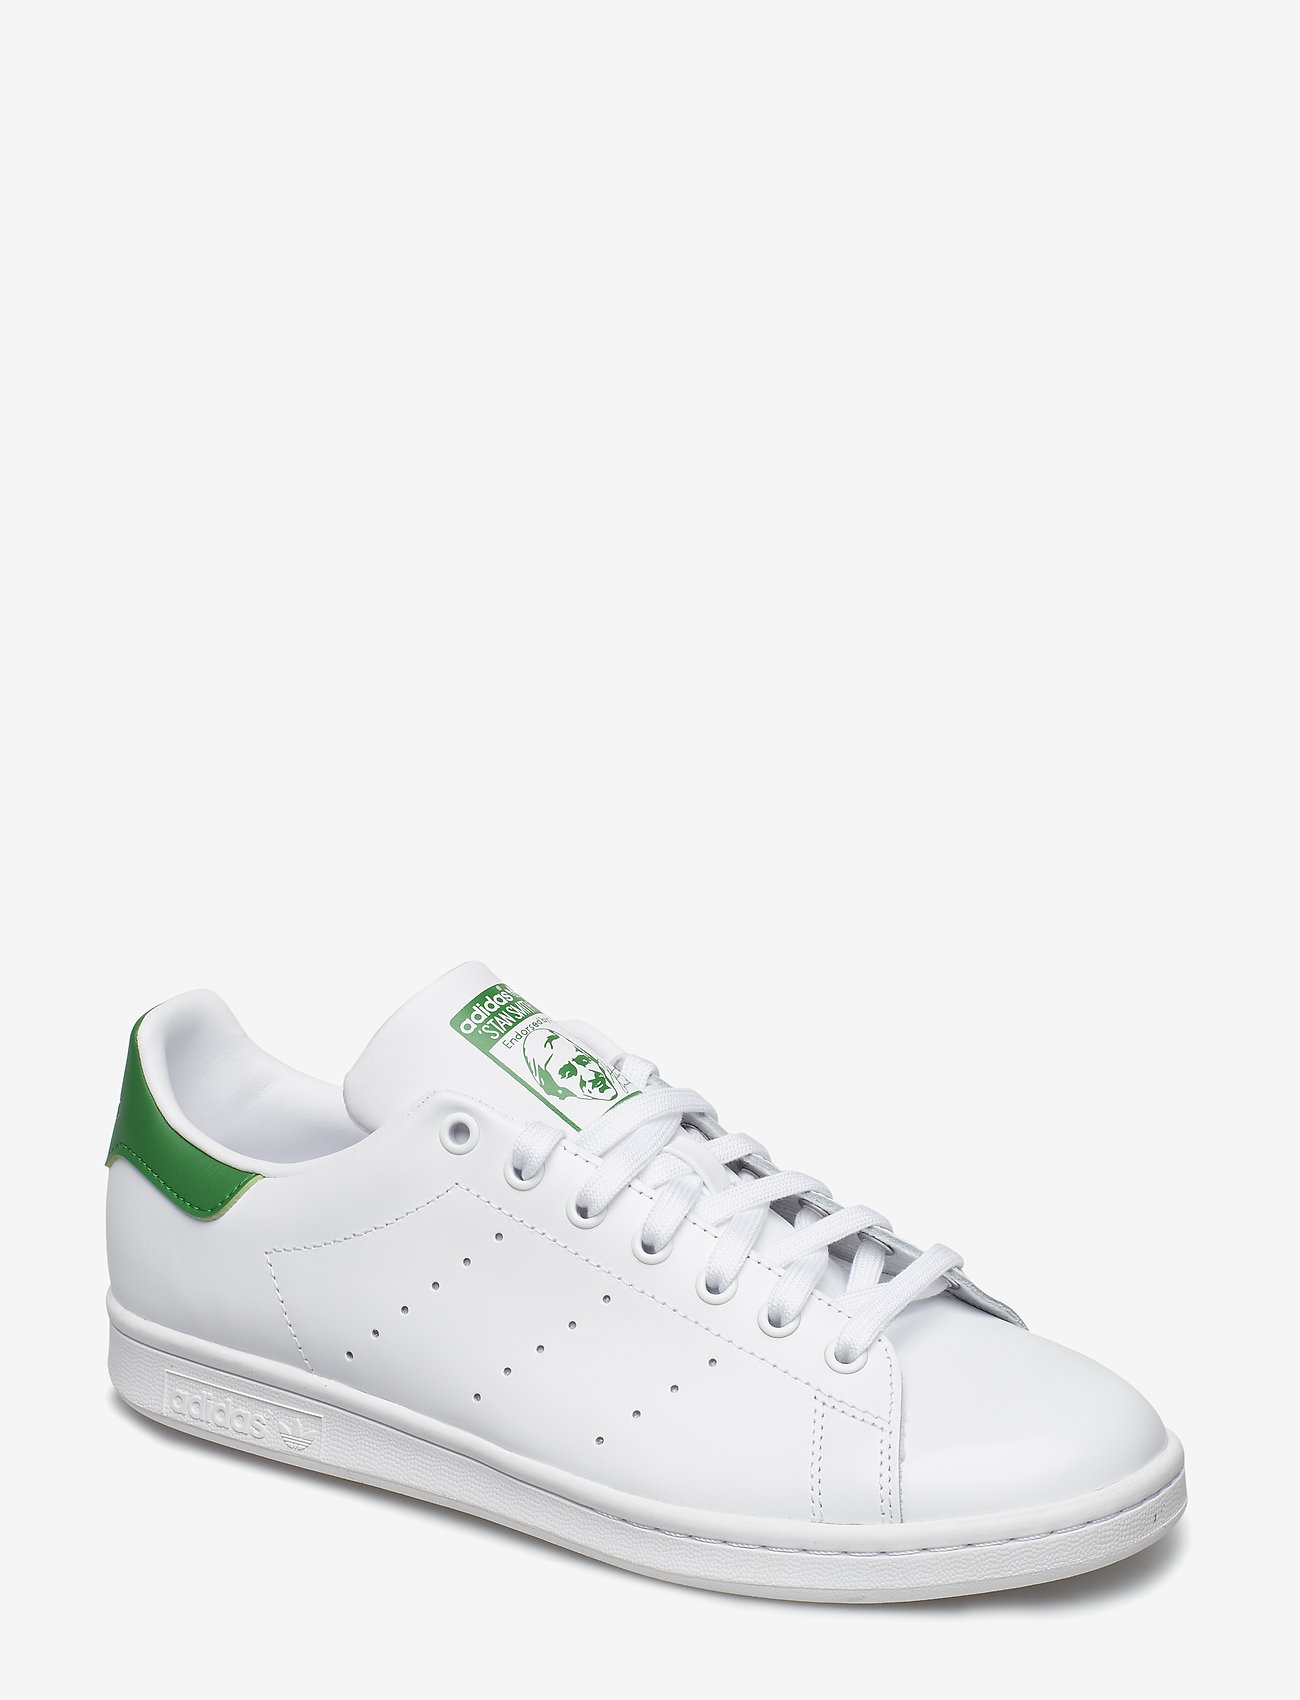 adidas Originals - STAN SMITH - lav ankel - ftwwht/cwhite/green - 0